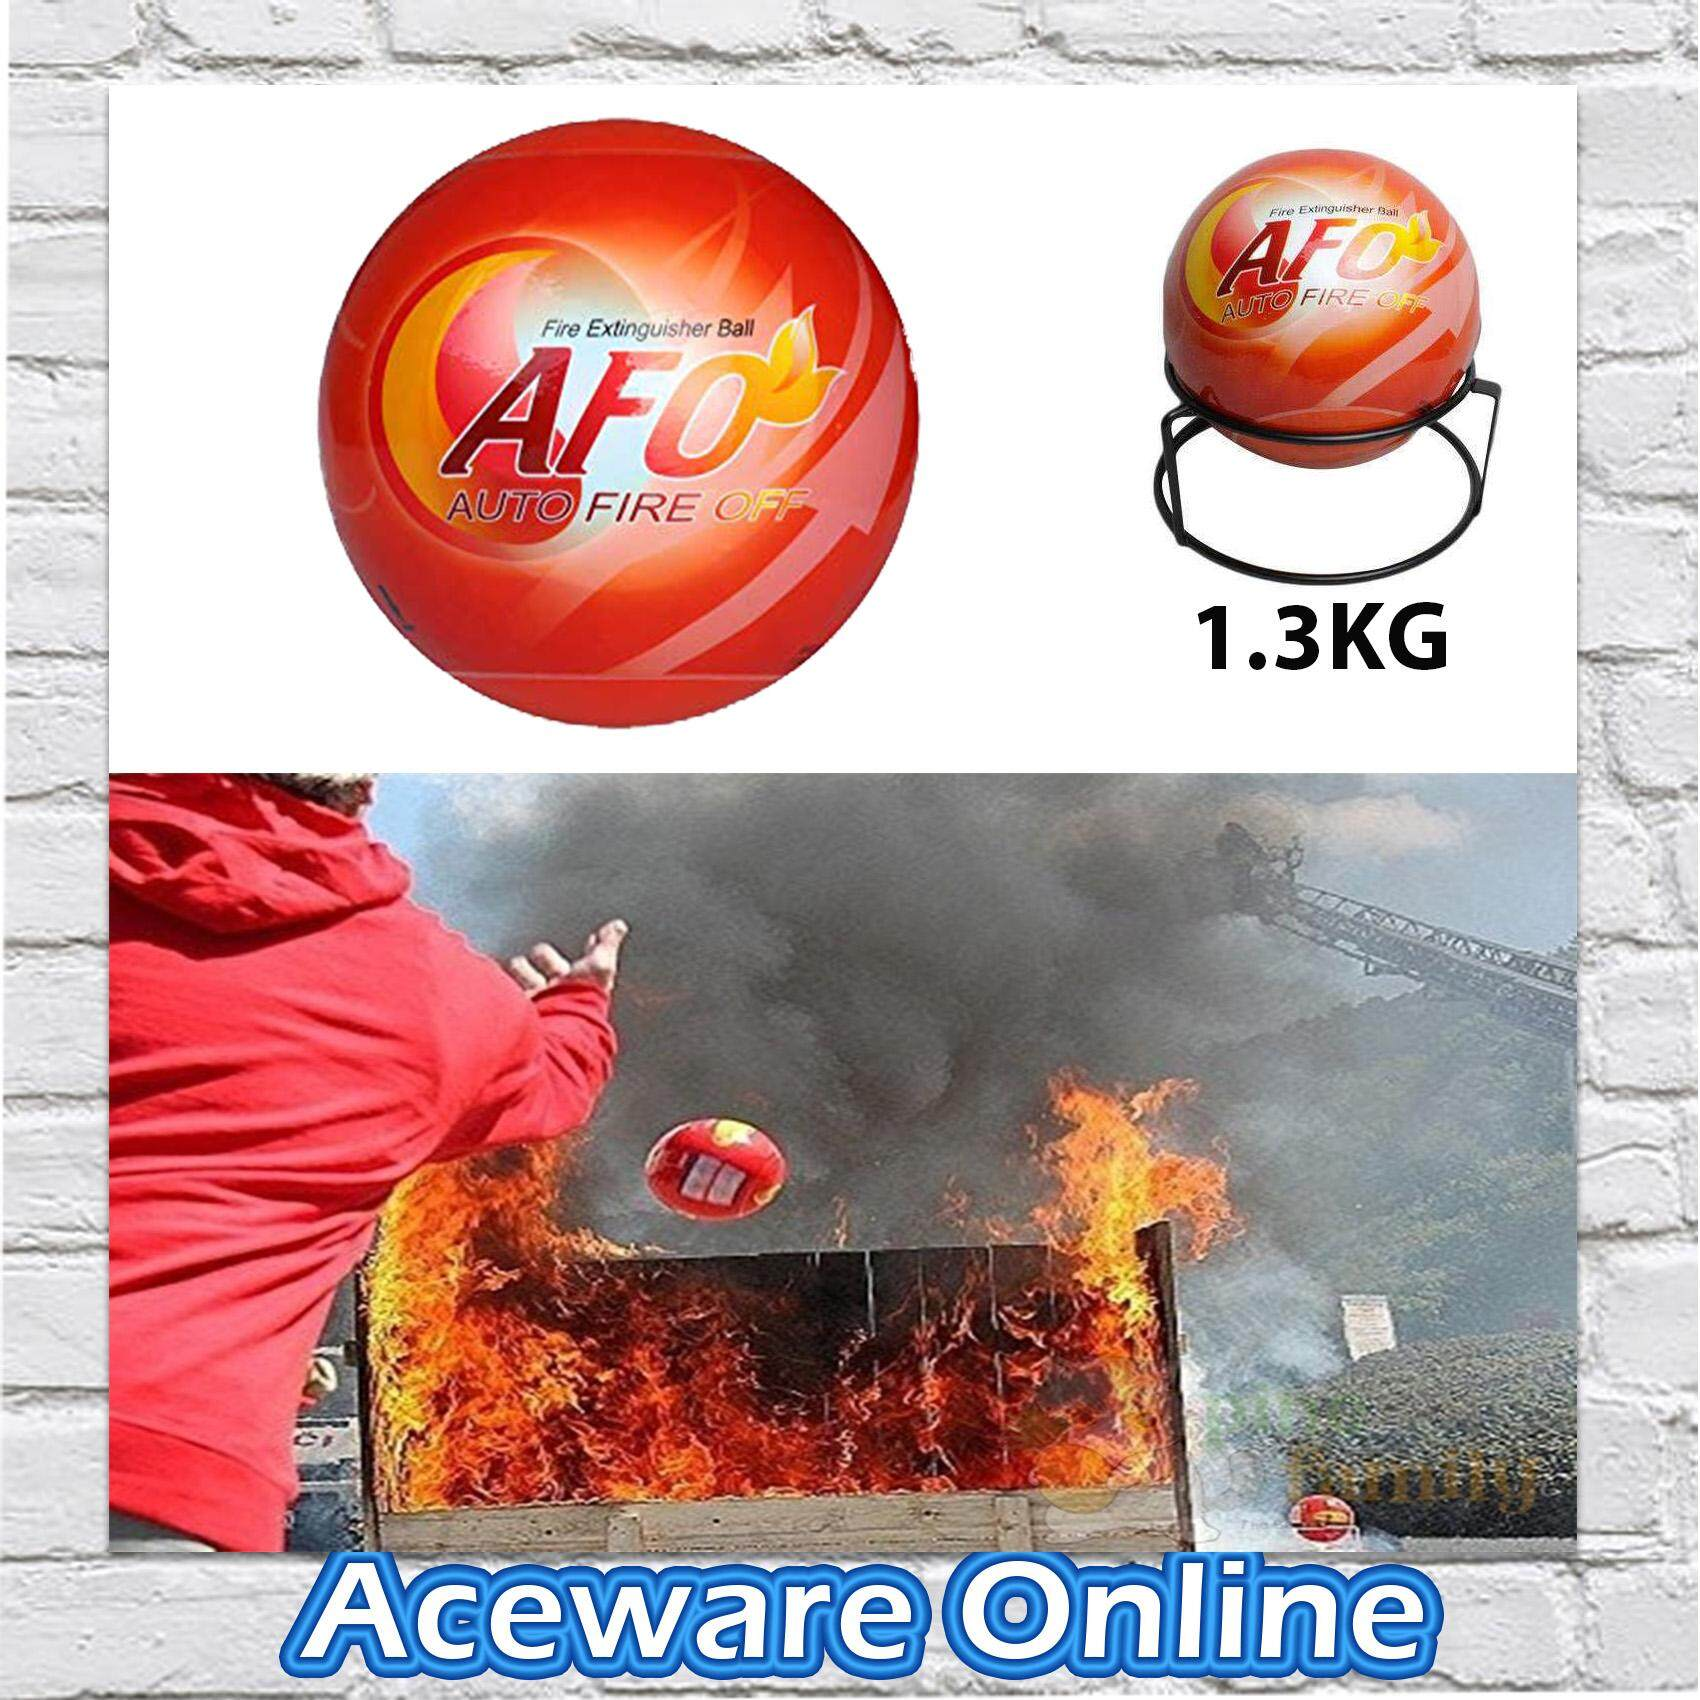 Fire Ball AFO Auto Fire Off Fire Extinguisher Ball 1.3KG